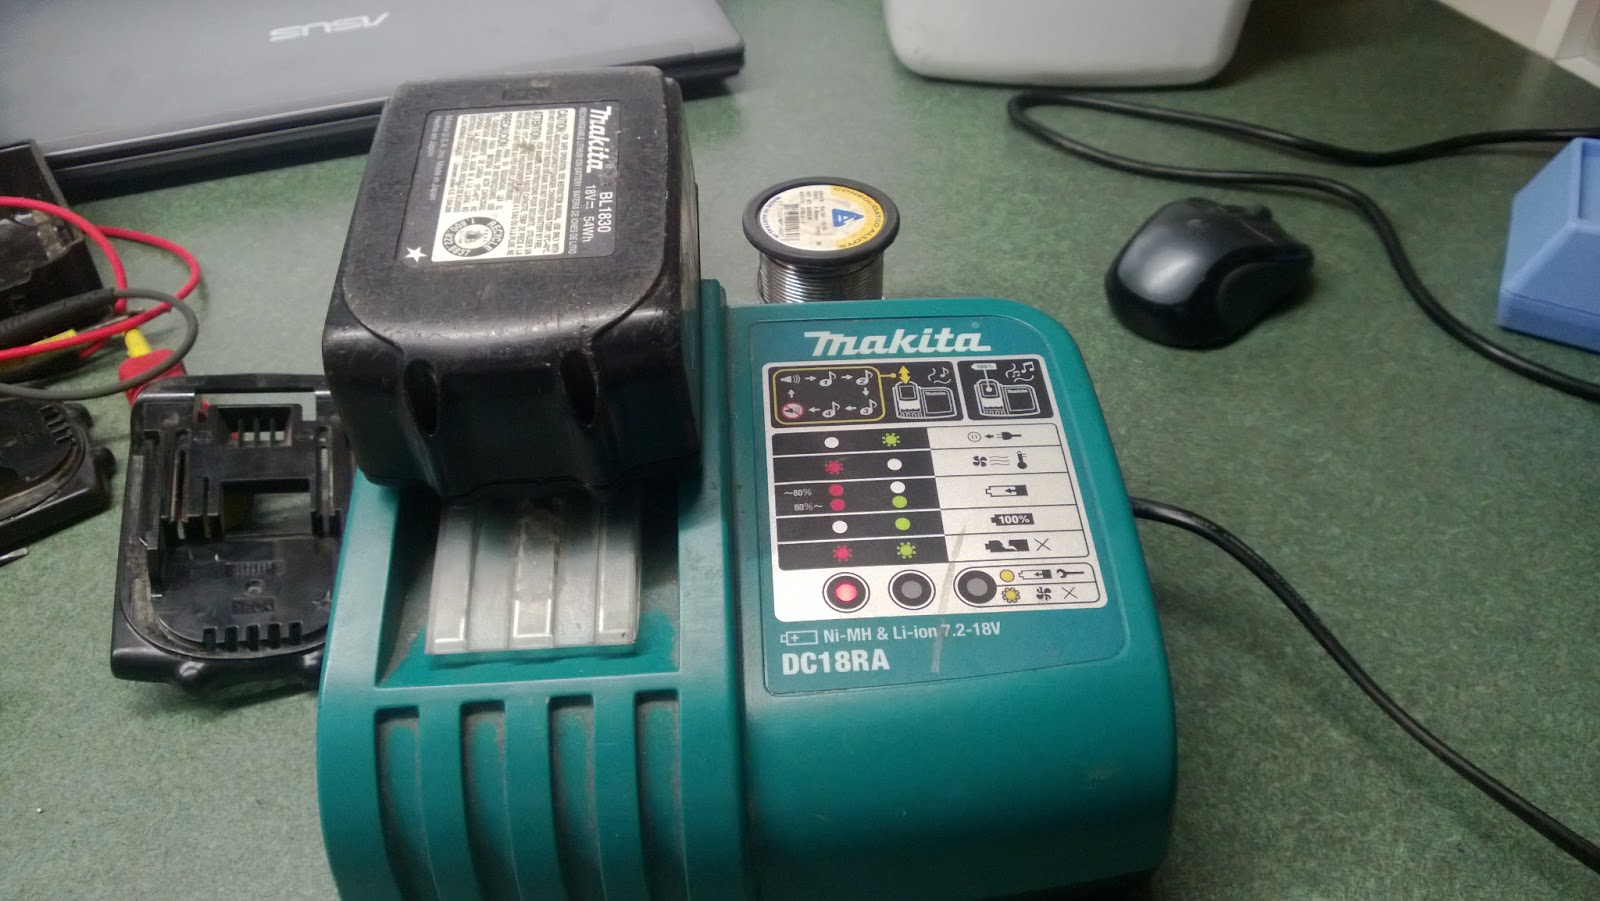 Makita Bl 1830 Battery Repair Fusible Link 18 Volt Wiring Diagram Hopefully Your Pack Comes Back Up To Full Voltage And Runs For Many More Cycles Giving The Tools Customer Satisfaction They Deserve